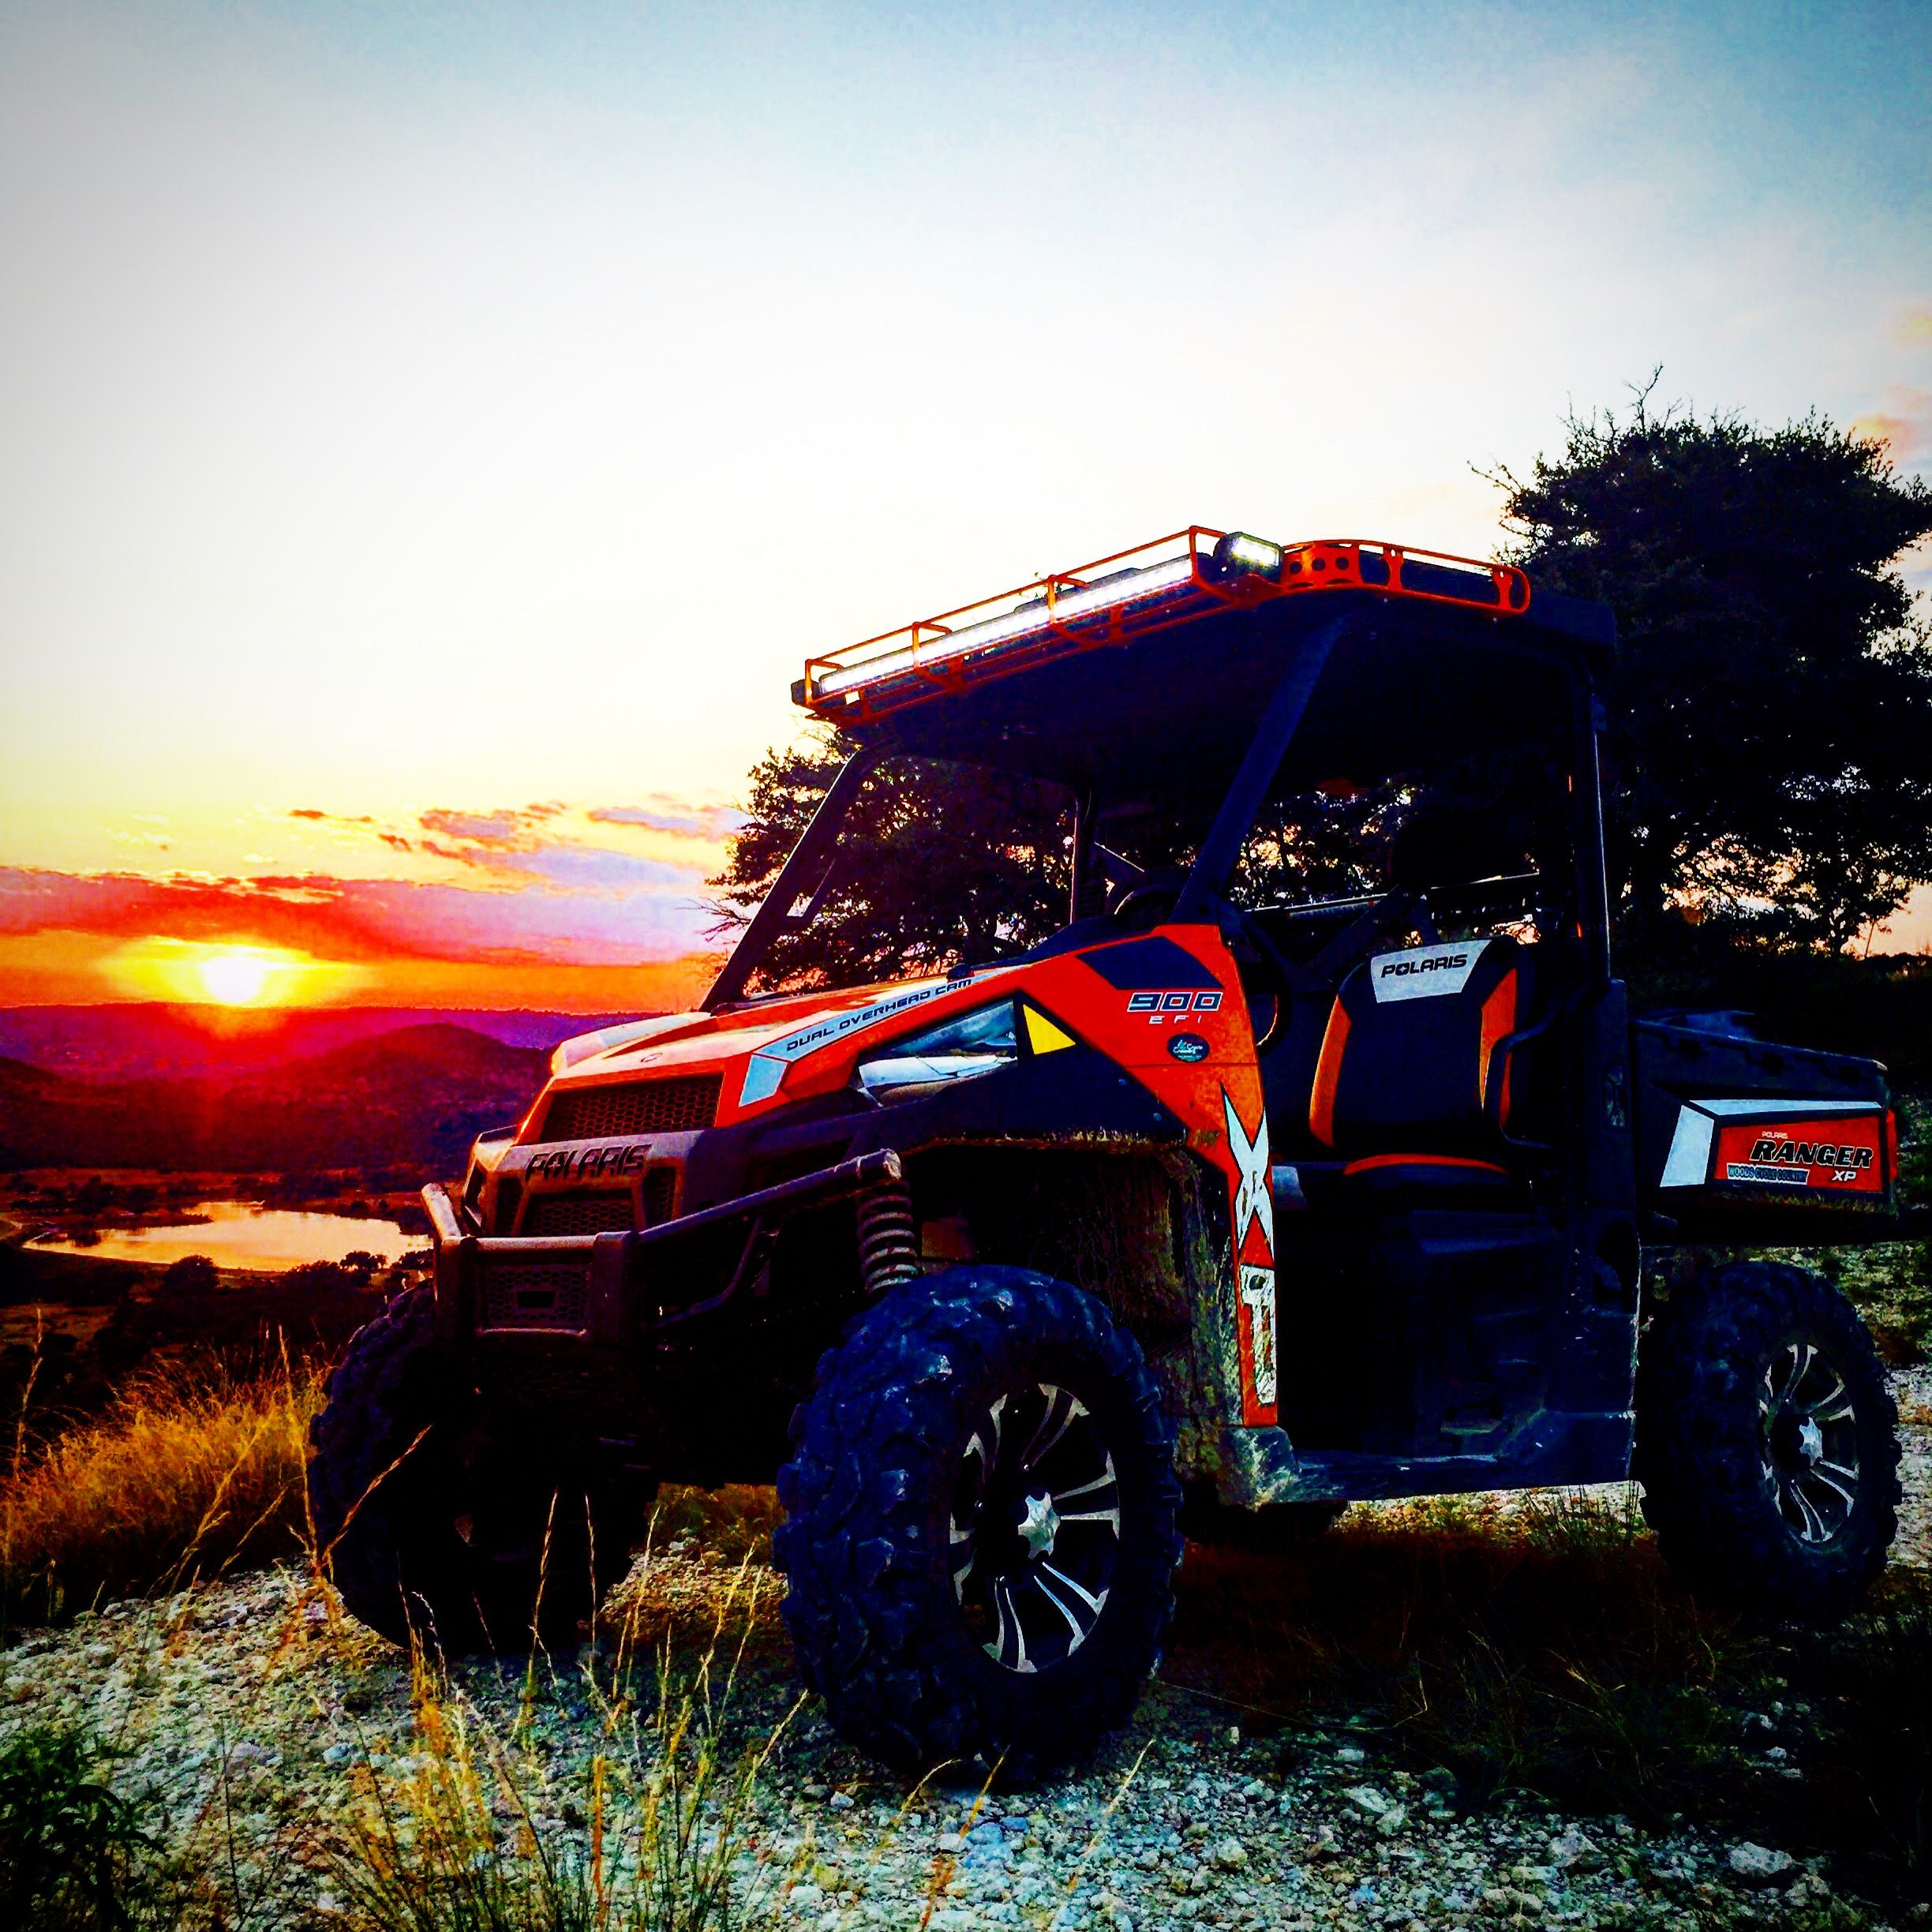 One of our Rangers out enjoying a nice Texas Hill Country sunset. #WoodsCycleCountry #WC3